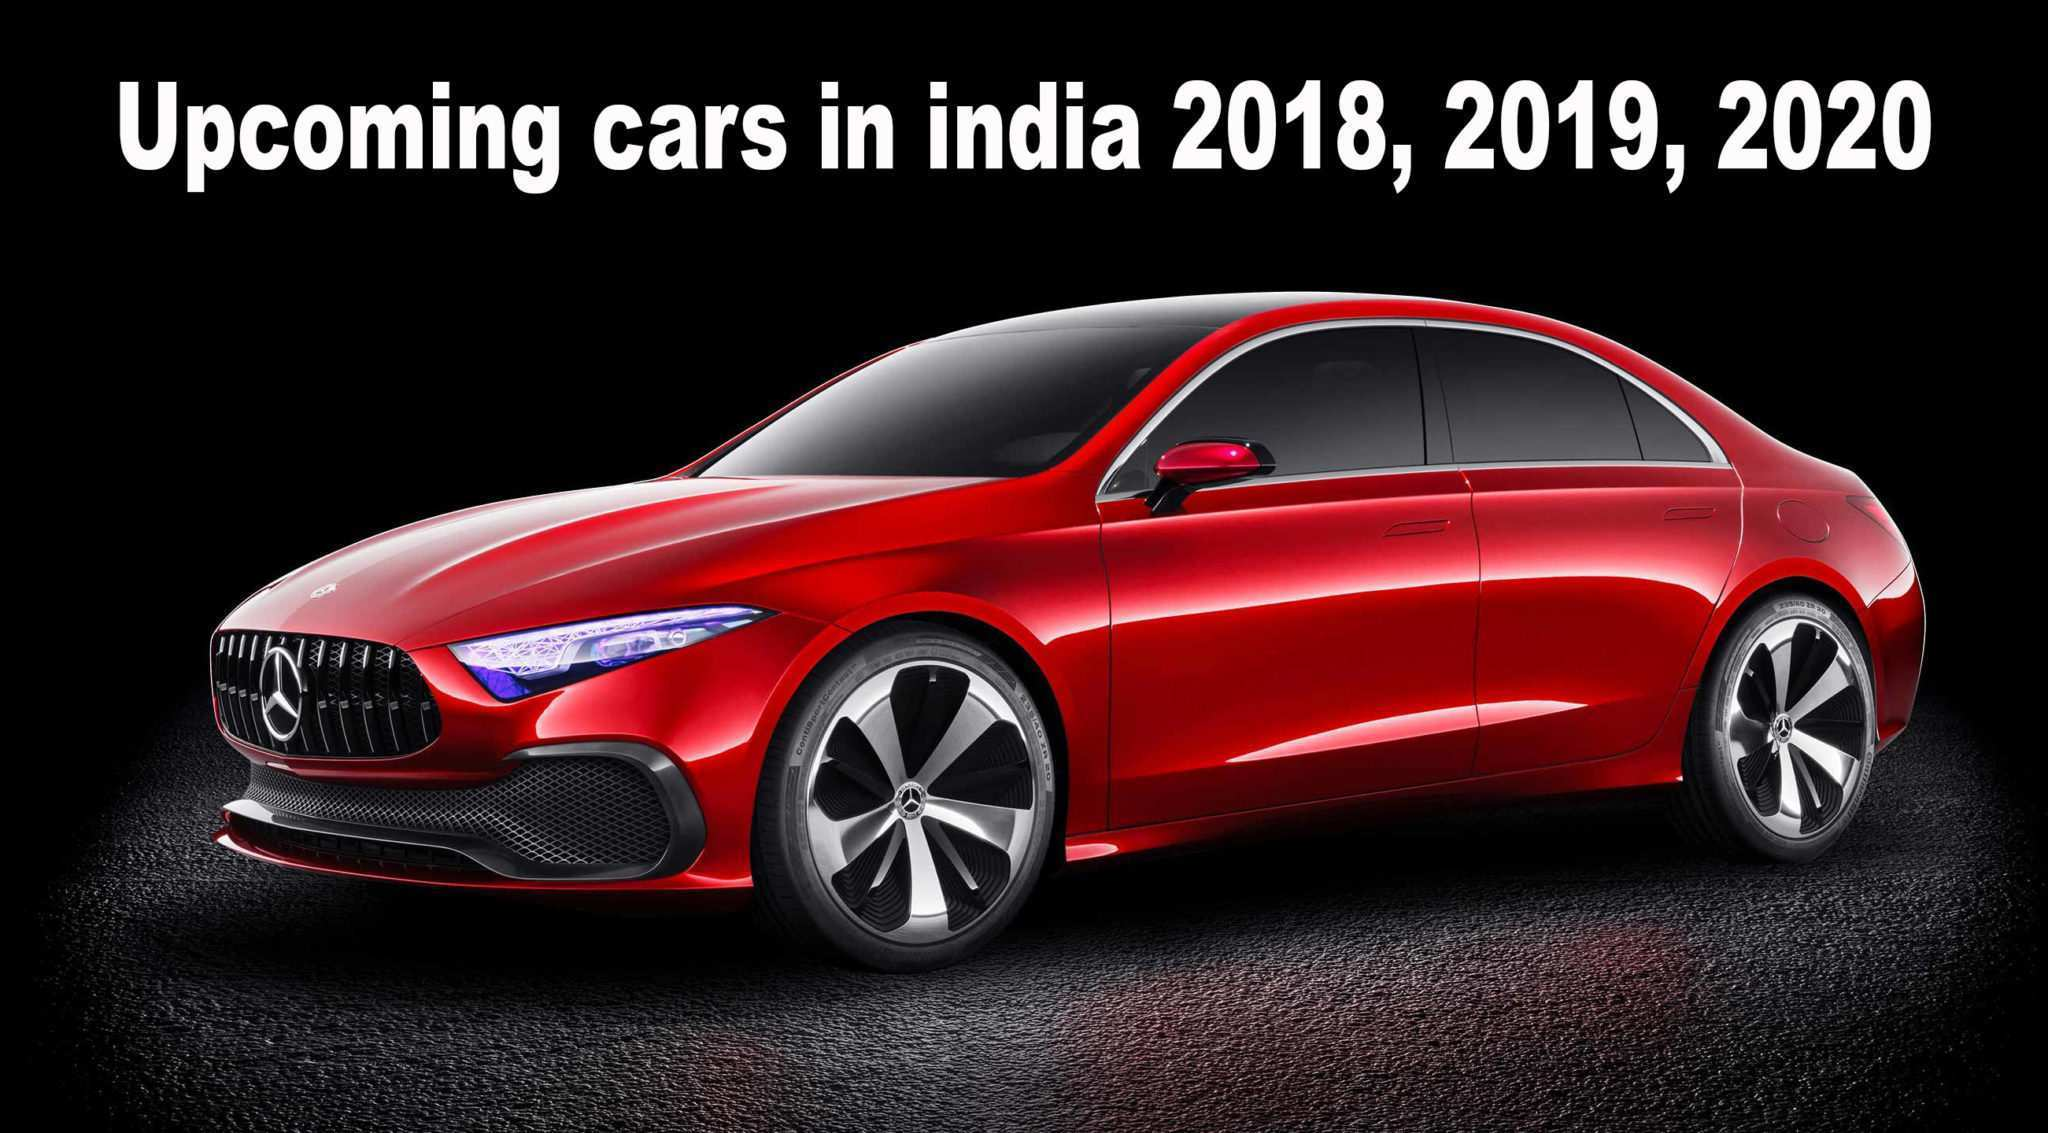 51 New Upcoming Mercedes Cars In India 2020 Picture by Upcoming Mercedes Cars In India 2020